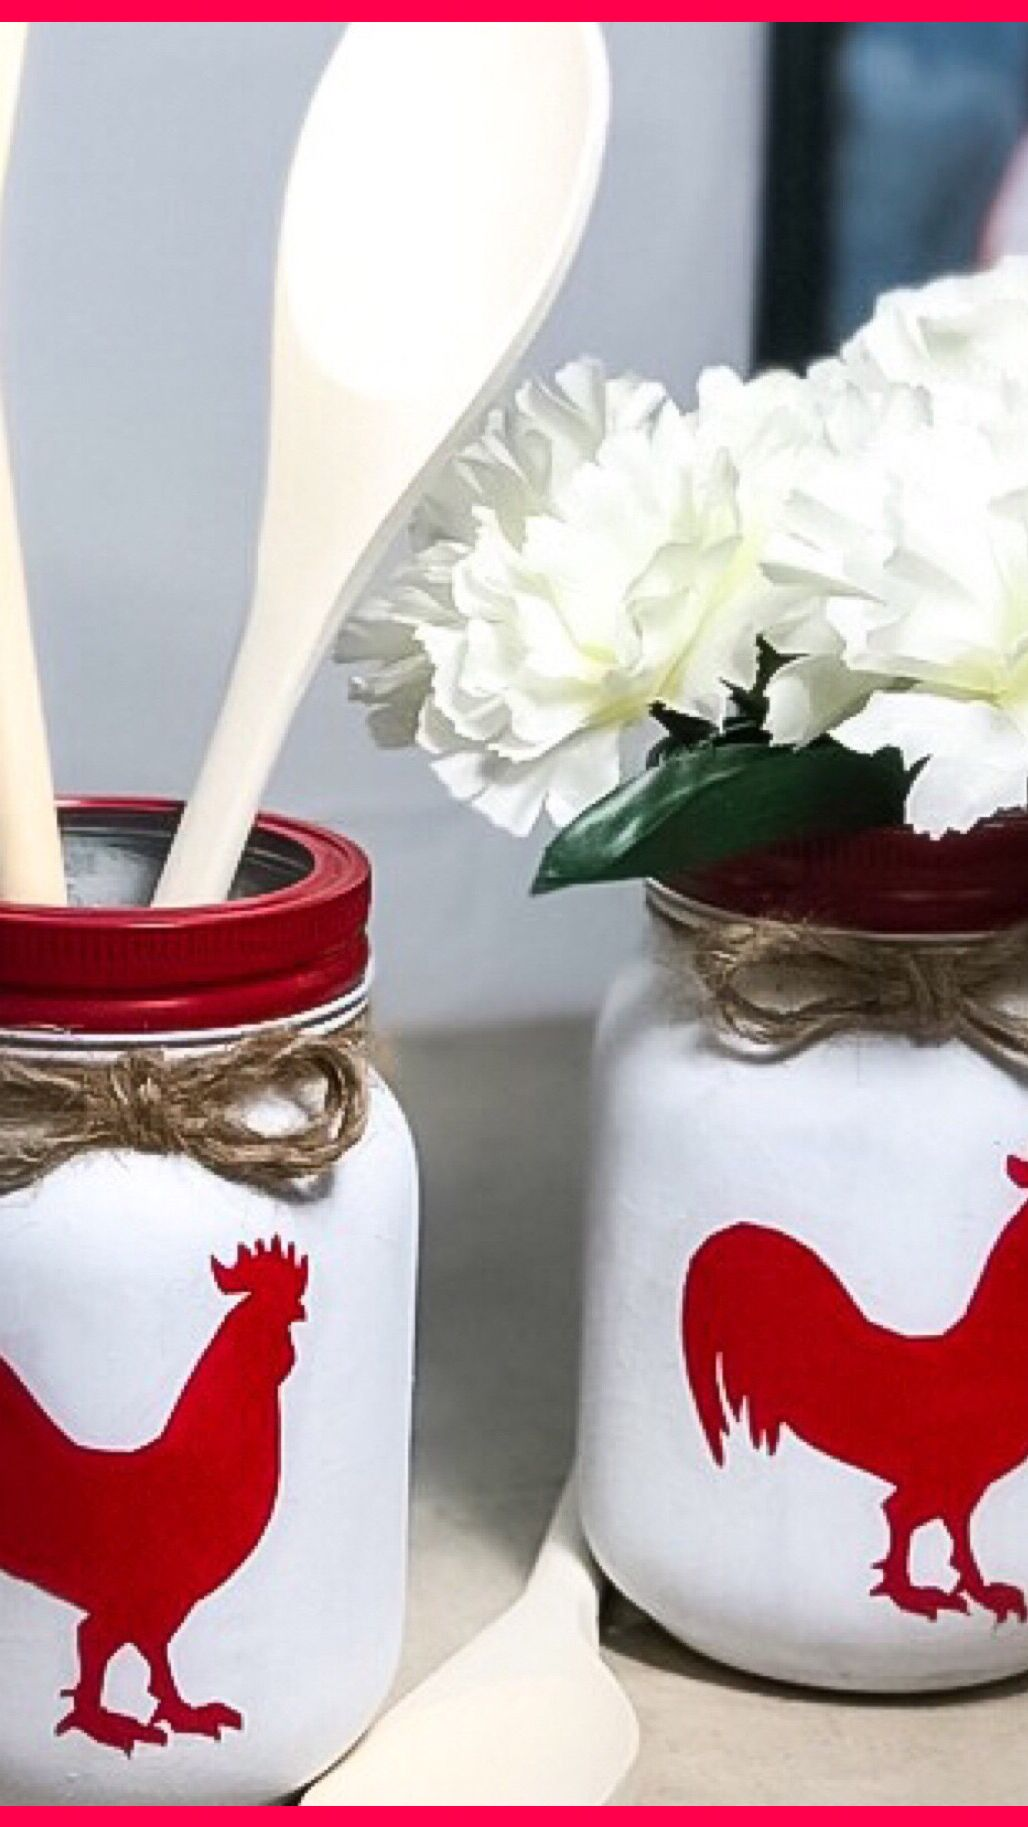 DIY Kitchen Farmhouse Decor – Rooster Utensil Holder Rustic Home Decor – Mason Jar Craft